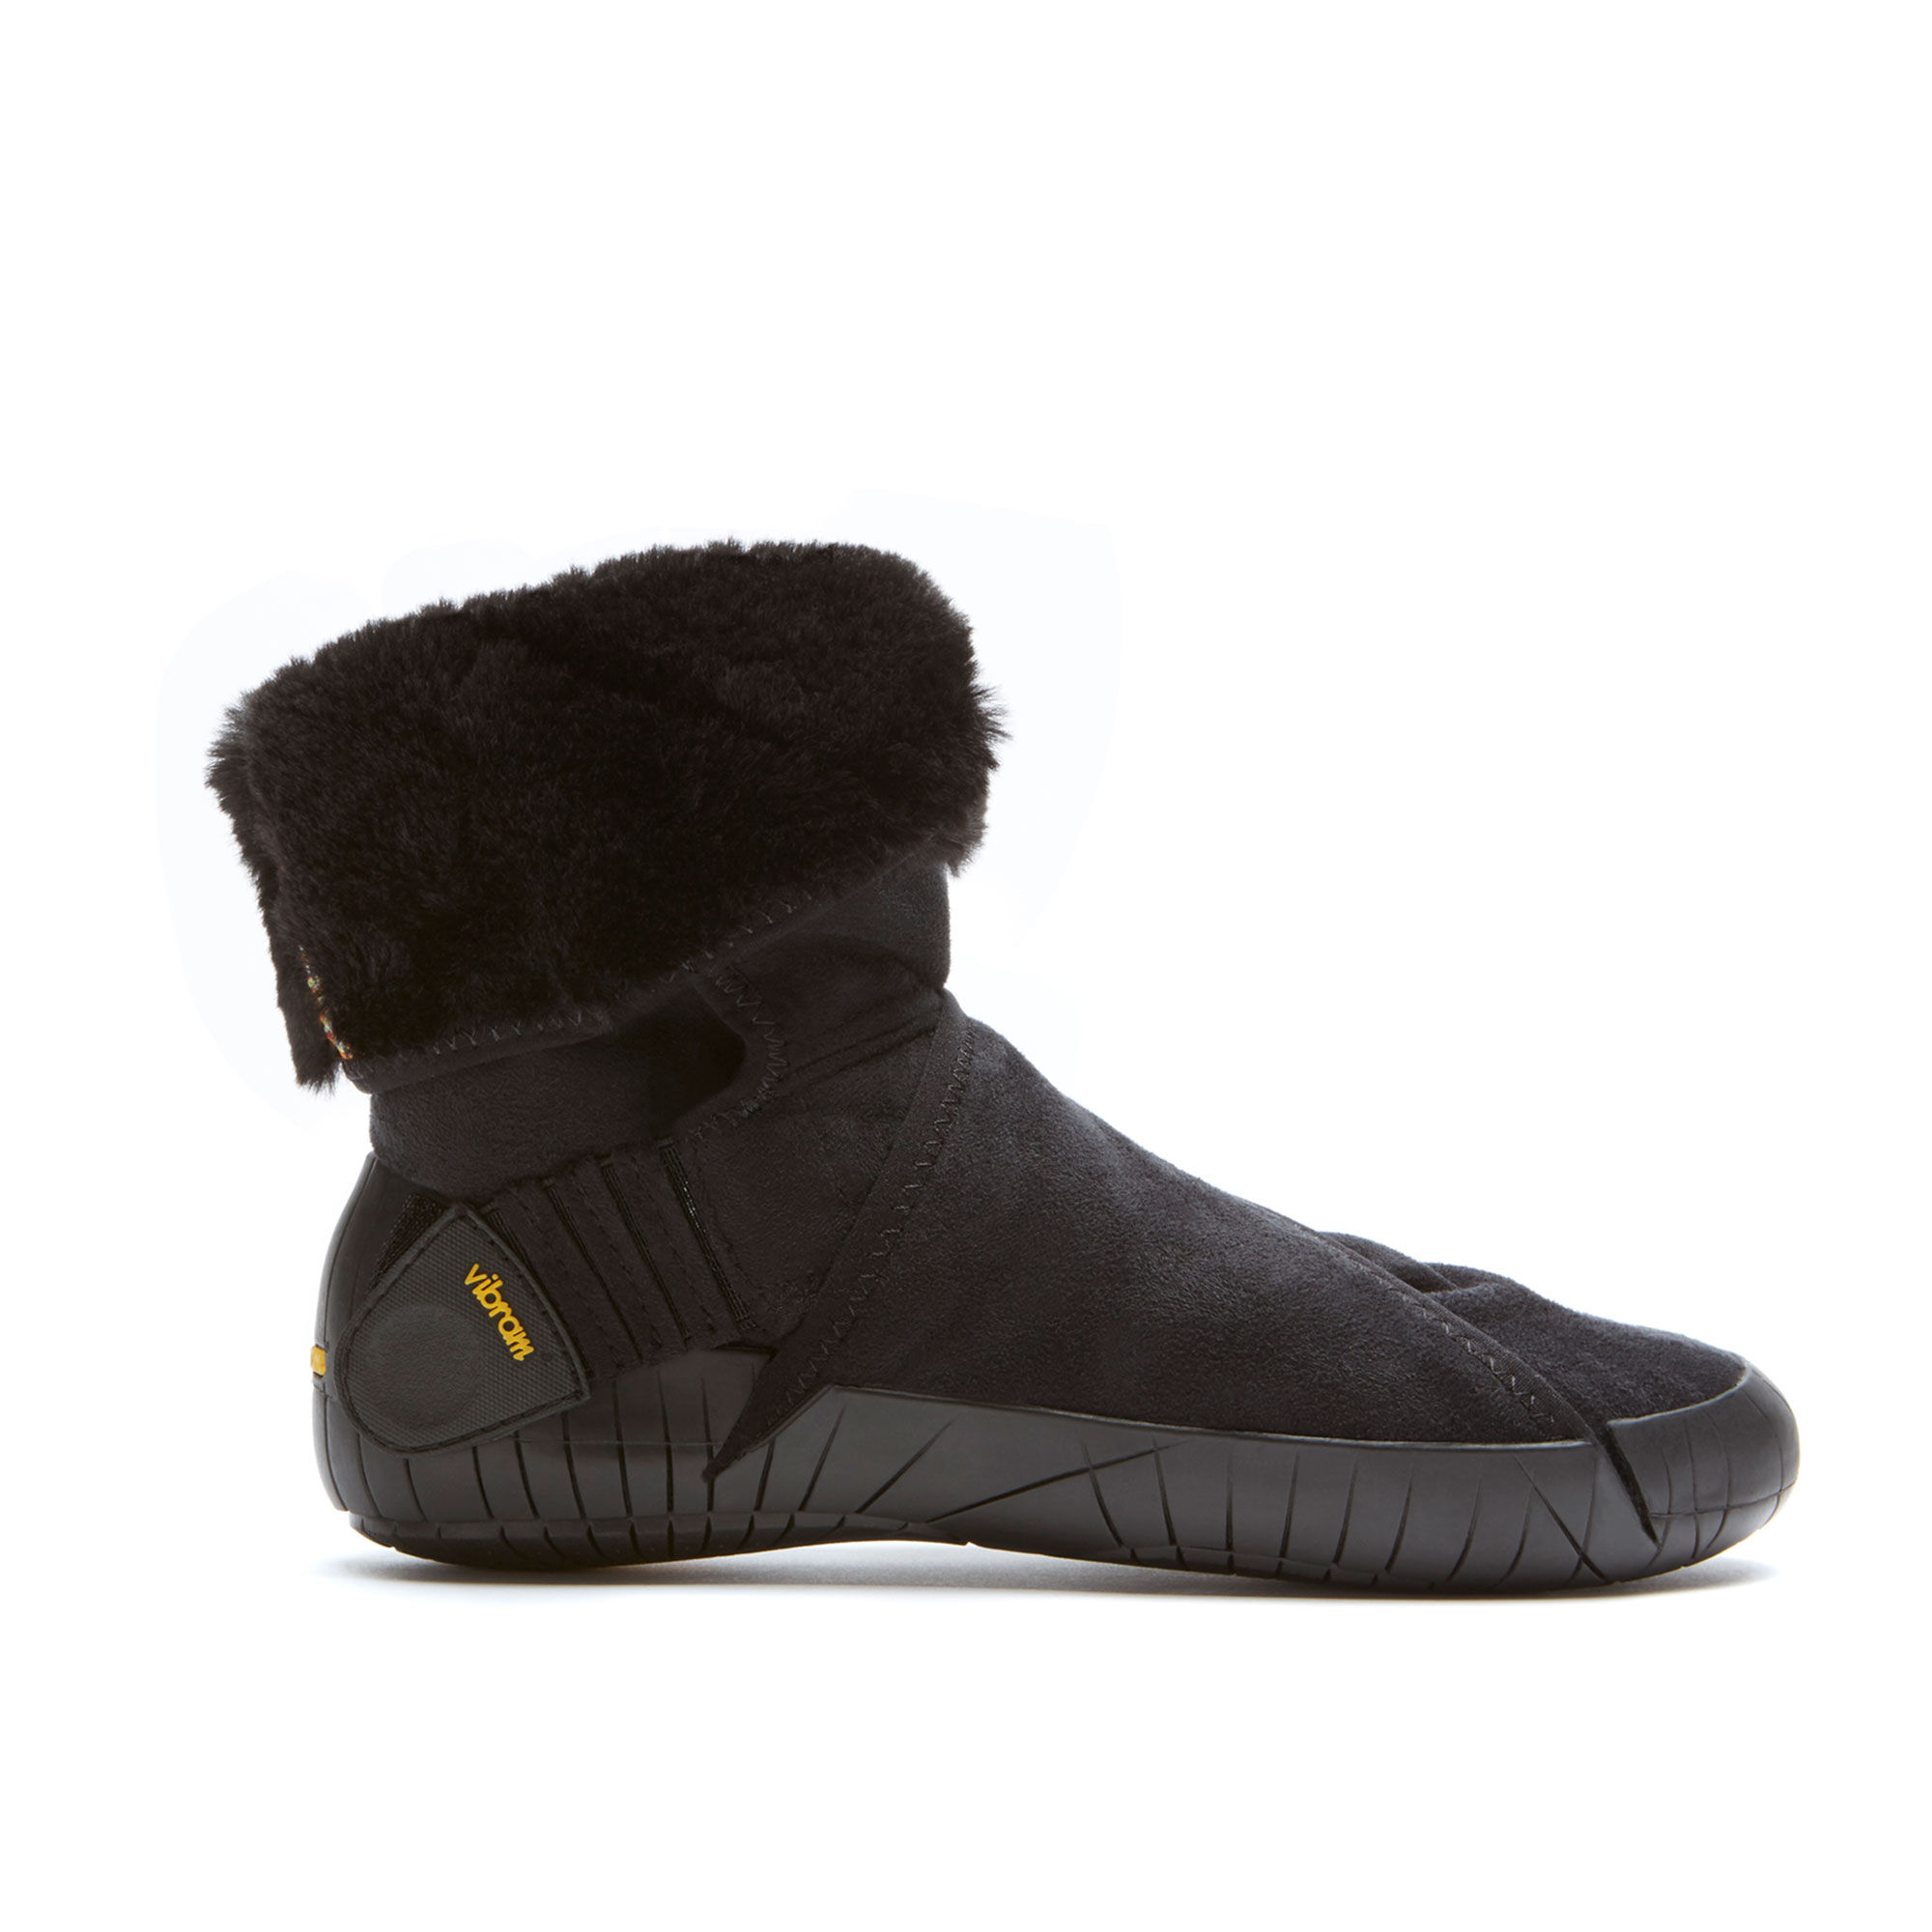 Unisex Adults Mid Eastern Traveler Classic Boots Vibram Fivefingers uNhPq1bY